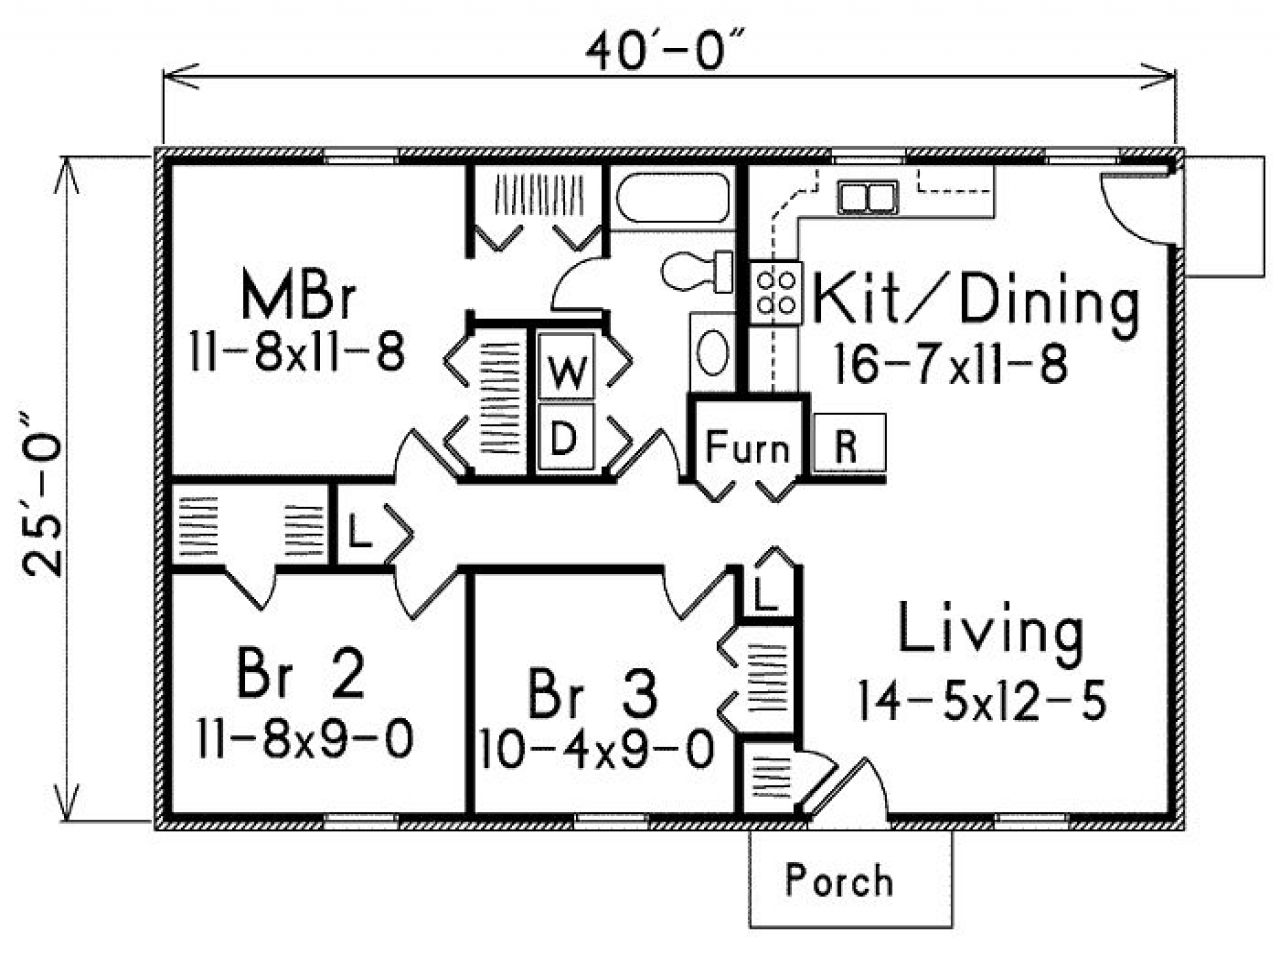 Related Image Ranch Style House Plans Bedroom House Plans Bedroom Floor Plans